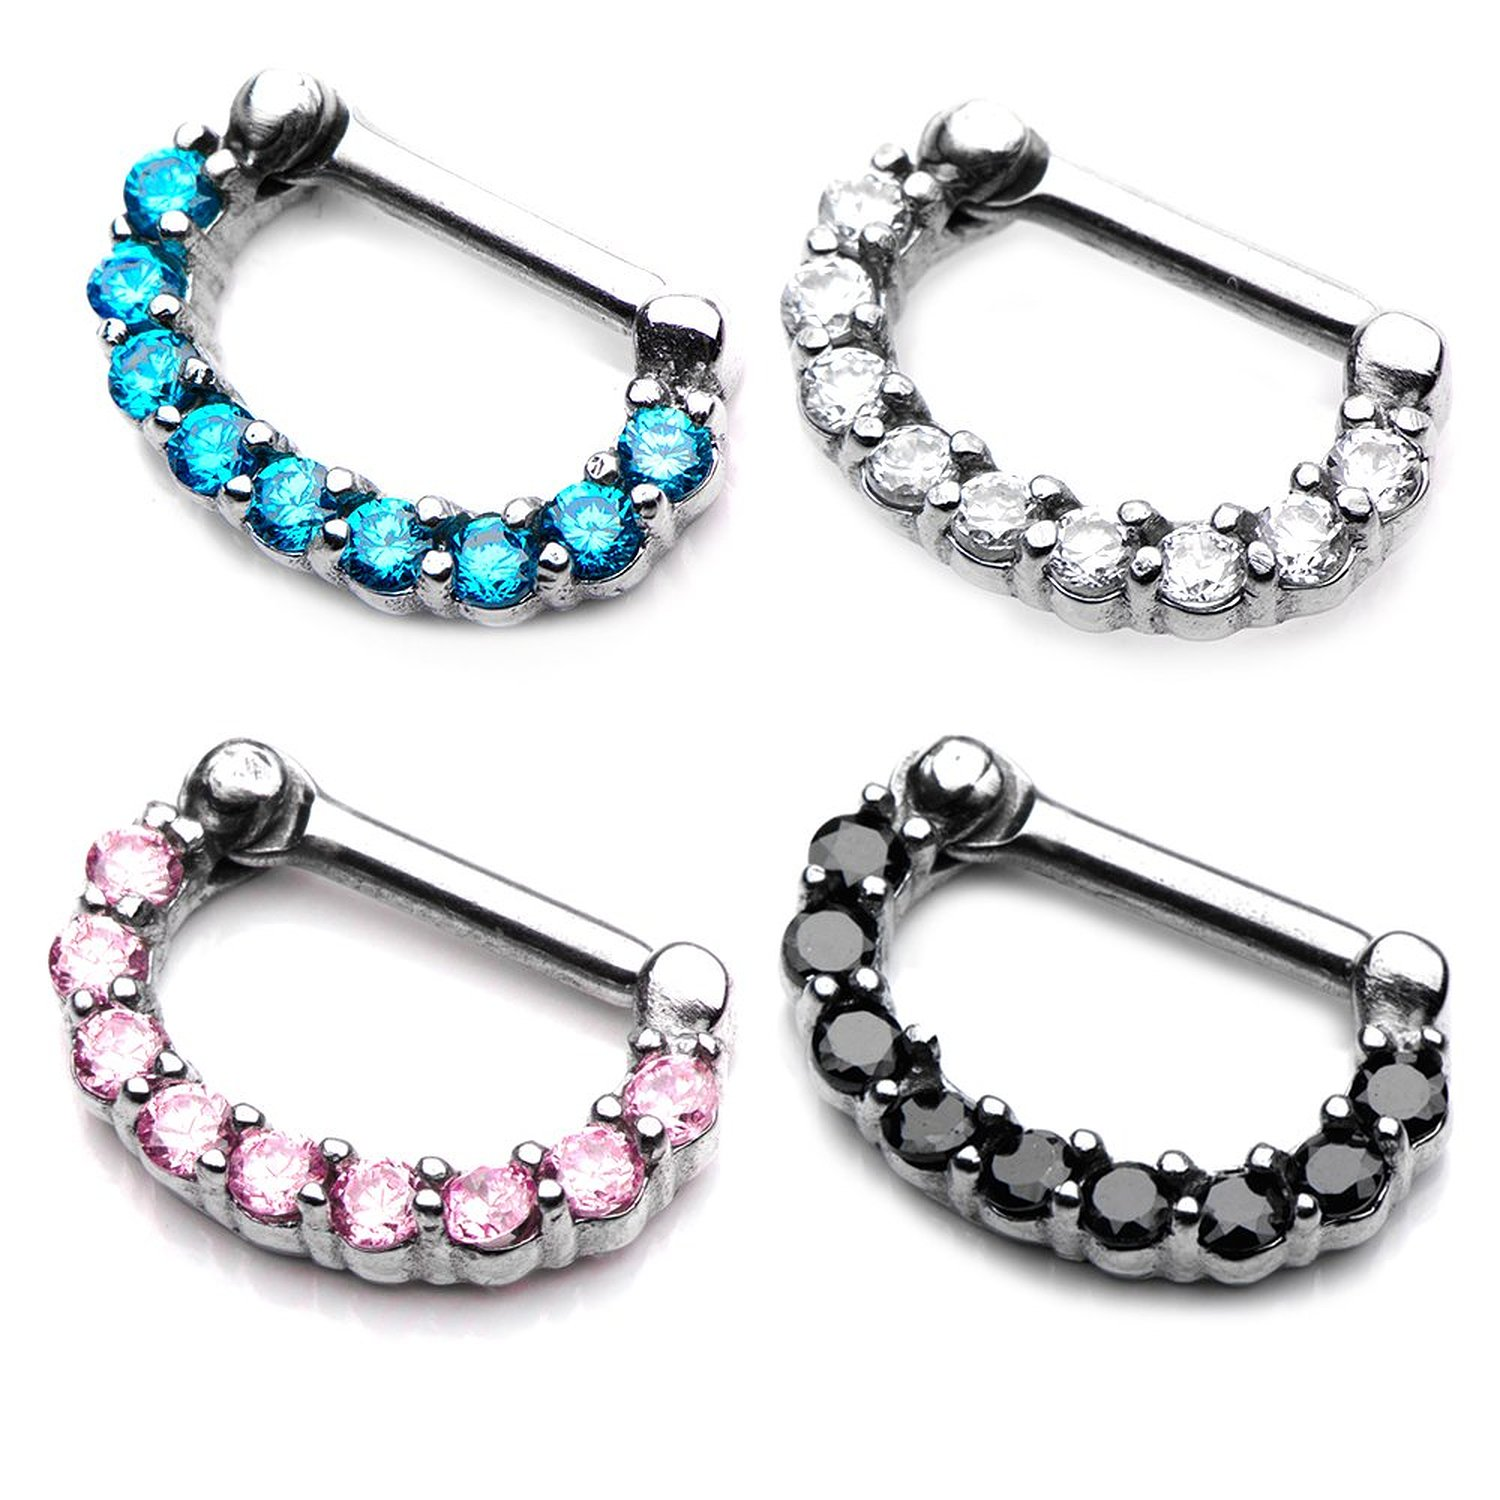 Amazon.com: 14 Gauge Crystal Jewel Septum Clicker Nose Ring Surgical Steel Prong Set Hoop - Pink, Clear, Black, Turquoise - Sold Individaully-SEPT41061K - 10x6 Diameters Full Jewel (Black): Jewelry